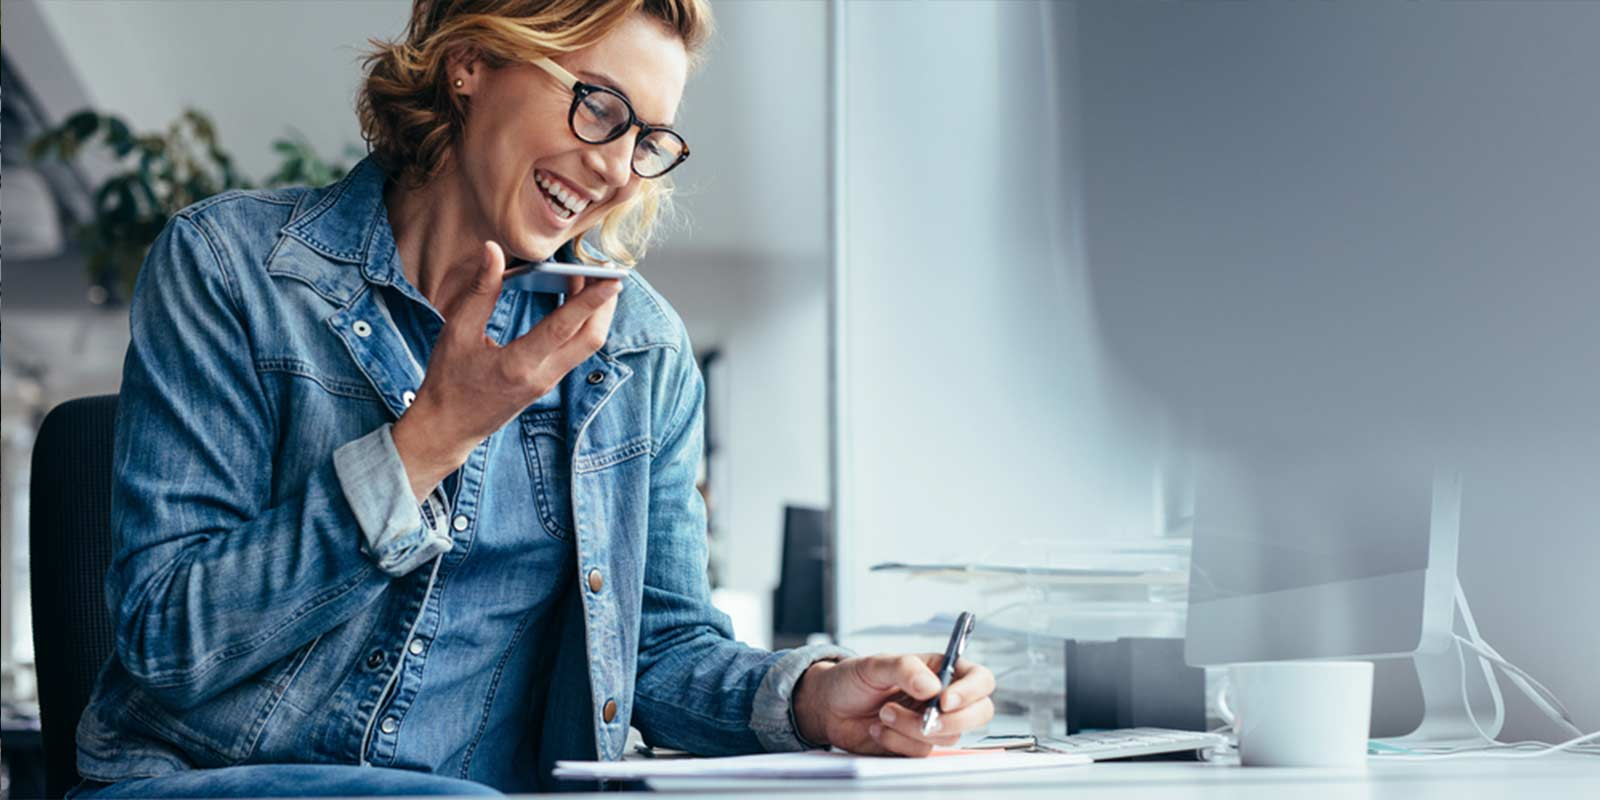 Business woman smiling as she reflects on how to get more clients.